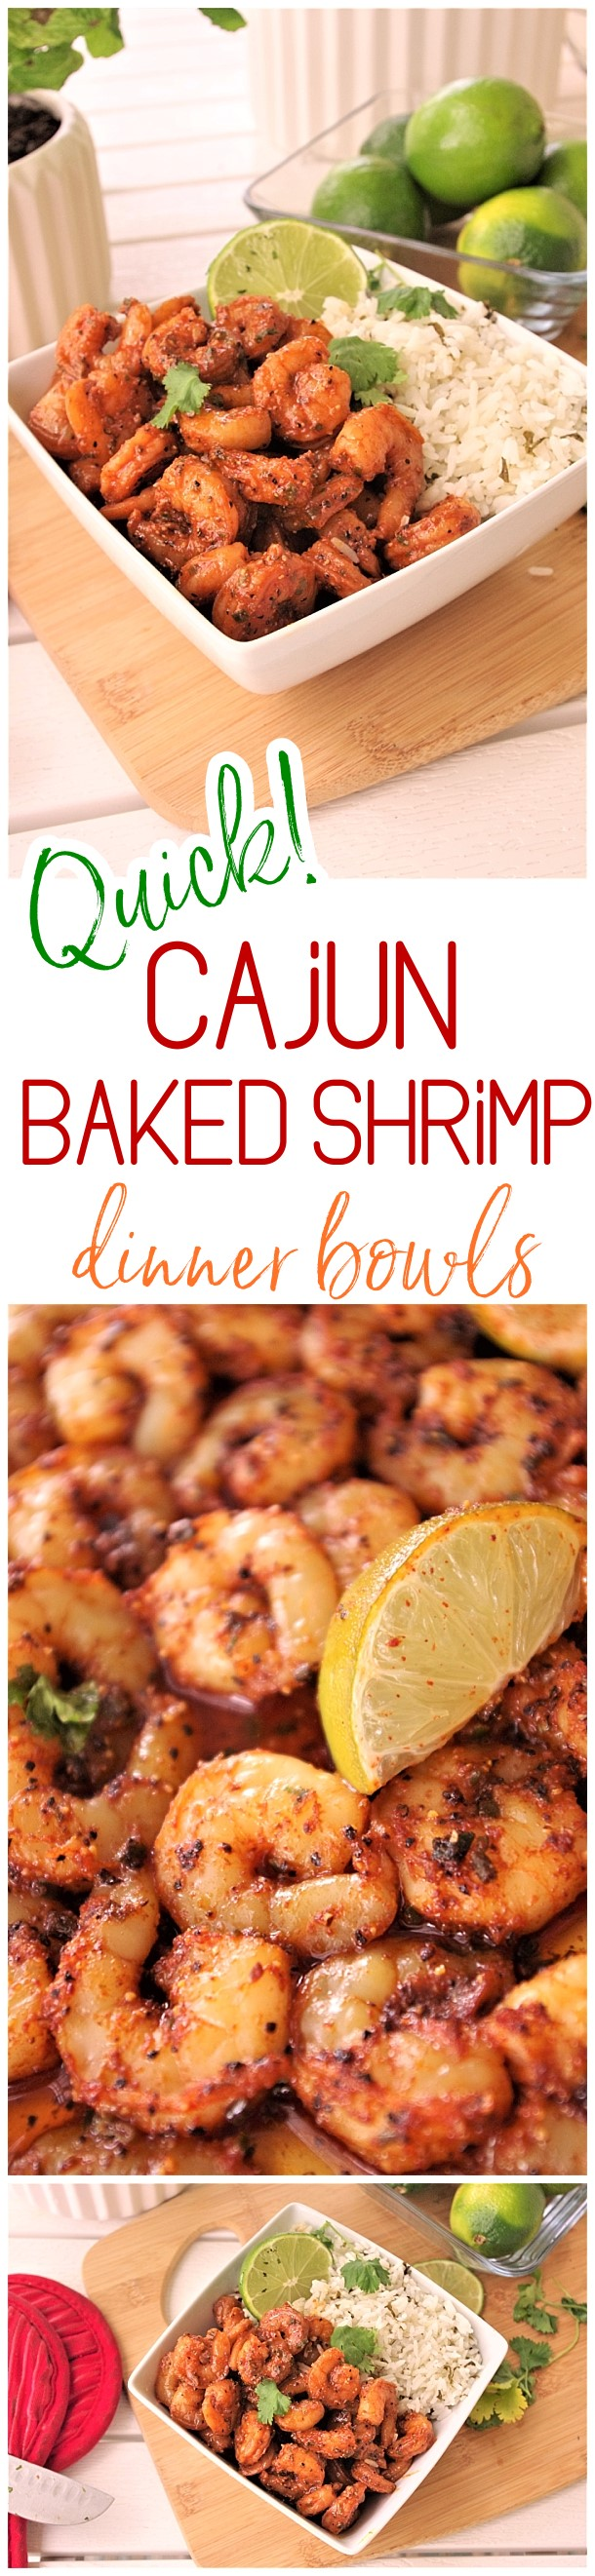 Quick and Easy Cajun Baked Sheet Pan Shrimp Bowls Lunch or Dinner Family Style Recipe - Use it in tacos, meal prep bowls, or over rice or noodles. So versatile and the flavor is so yummy you'll want to eat the entire pan by itself! Dreaming in DIY #30minutemeals #30minutedinners #thirtyminutedinners #30minuterecipes #fastrecipes #easyrecipes #quickrecipes #mealprep #simplefamilymeals #simplefamilyrecipes #simplerecipes